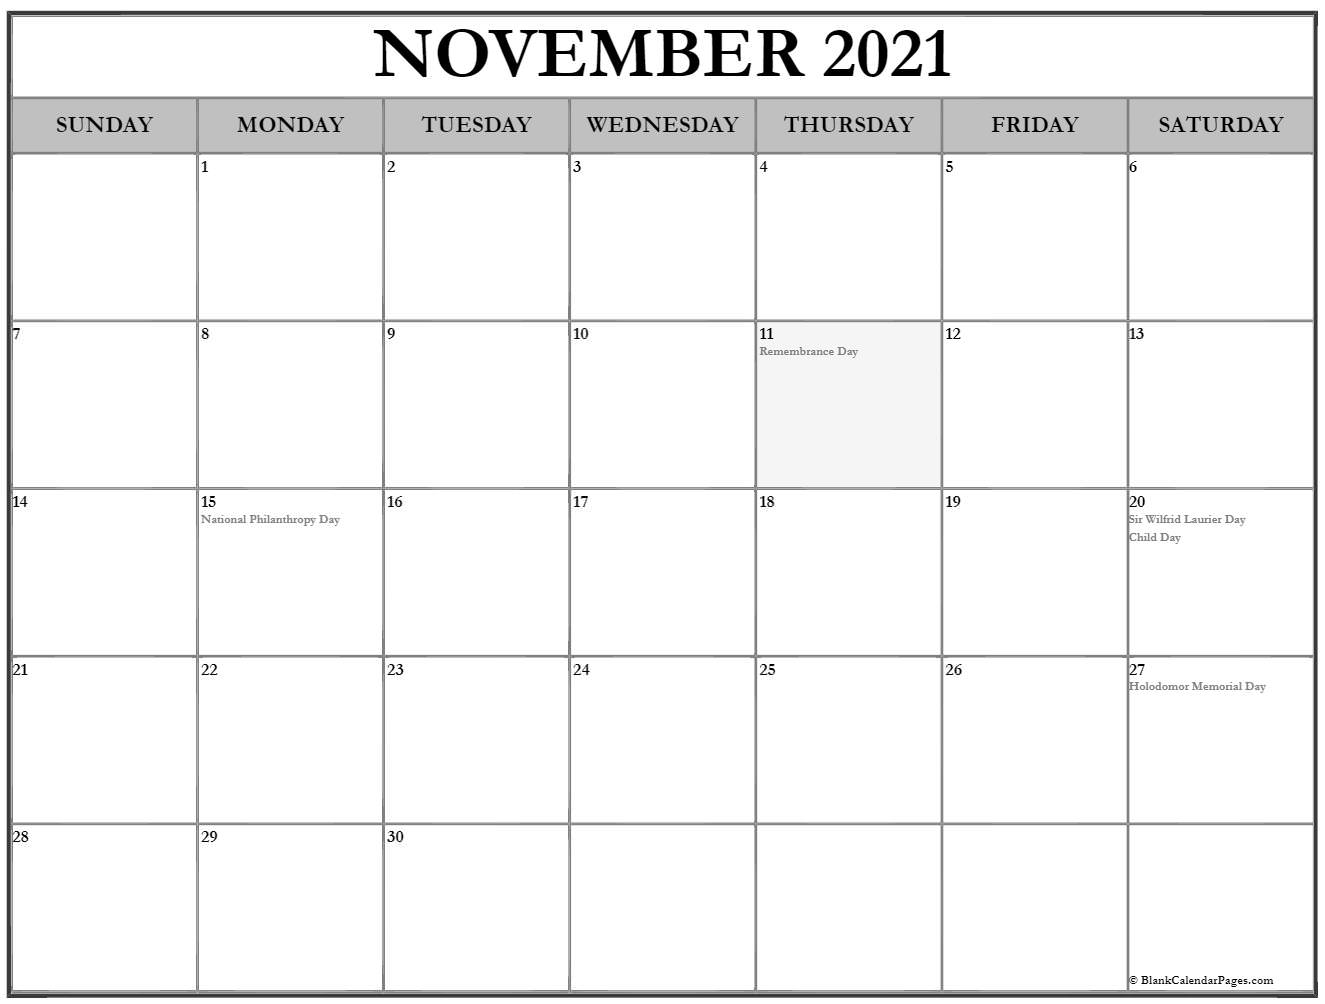 Month of November 2021 holidays Canada